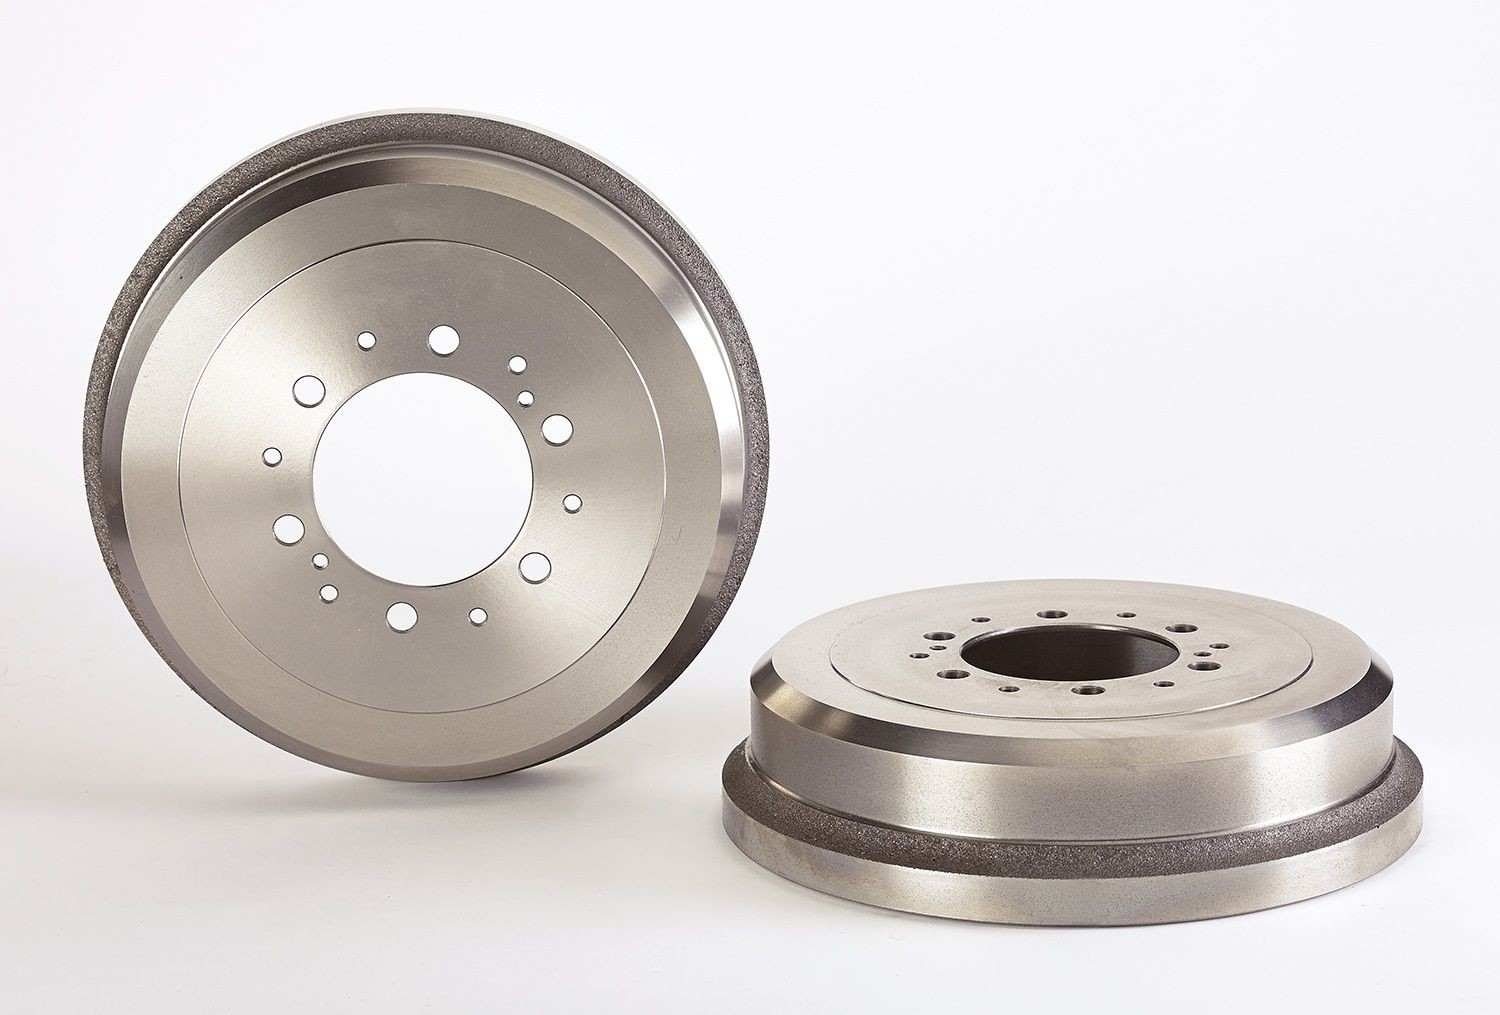 MAGNETI MARELLI OFFERED BY MOPAR - OE Replacement Brake Drum - MGM 1AMVD20329